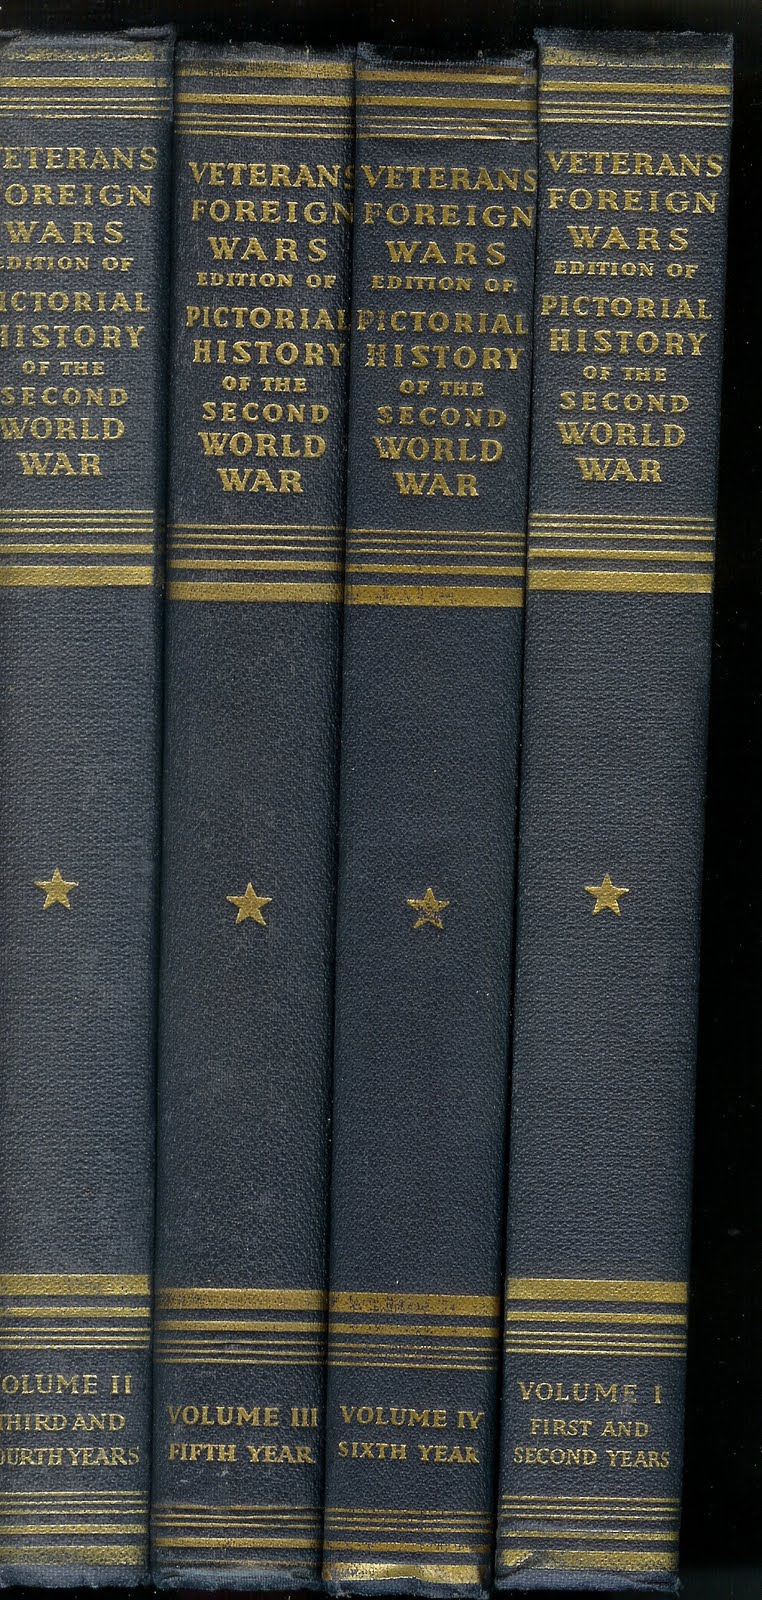 a fascination of wars the life and works of ernest hemingway Ernest hemingway was one of the most influential writers of the 20th century and many of his works are considered classics of american literature his personal life deserved a novel itself.